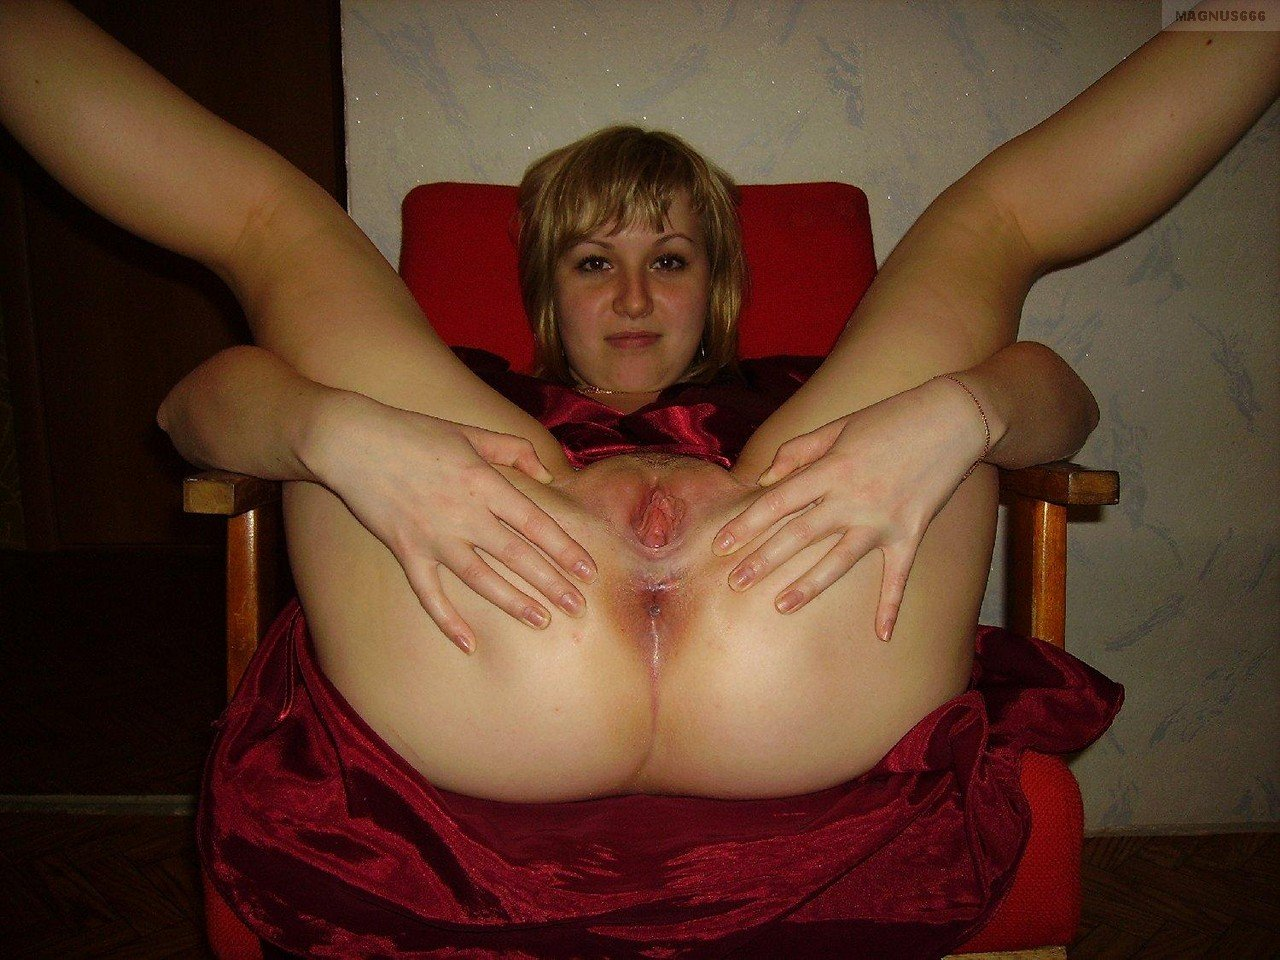 awesome cuckold videos tumblr there